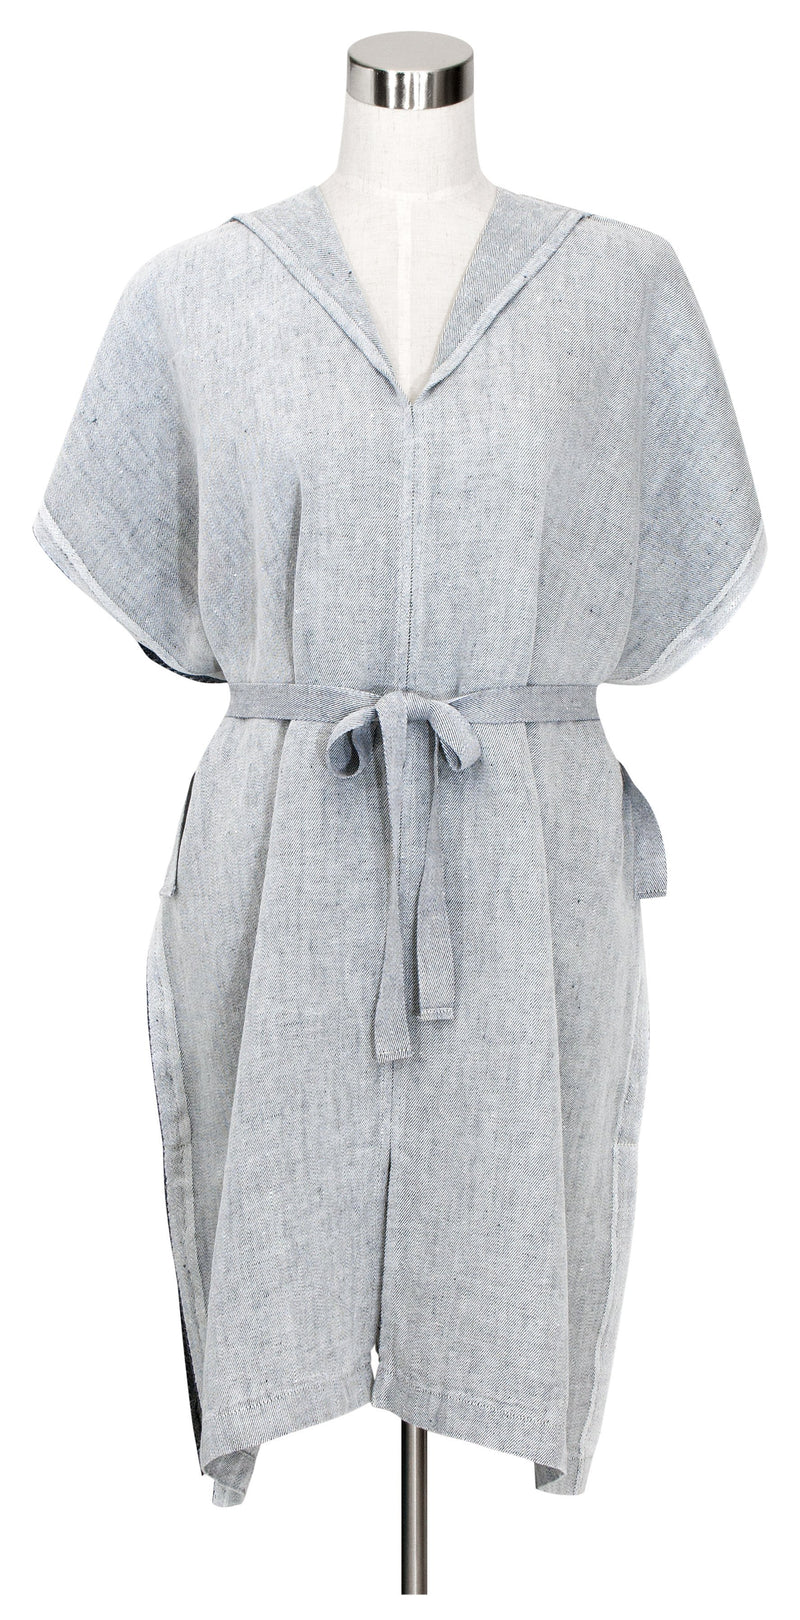 Lapuan Kankurit Bathrobe Grey Kaste Bathrobe | Washed Linen